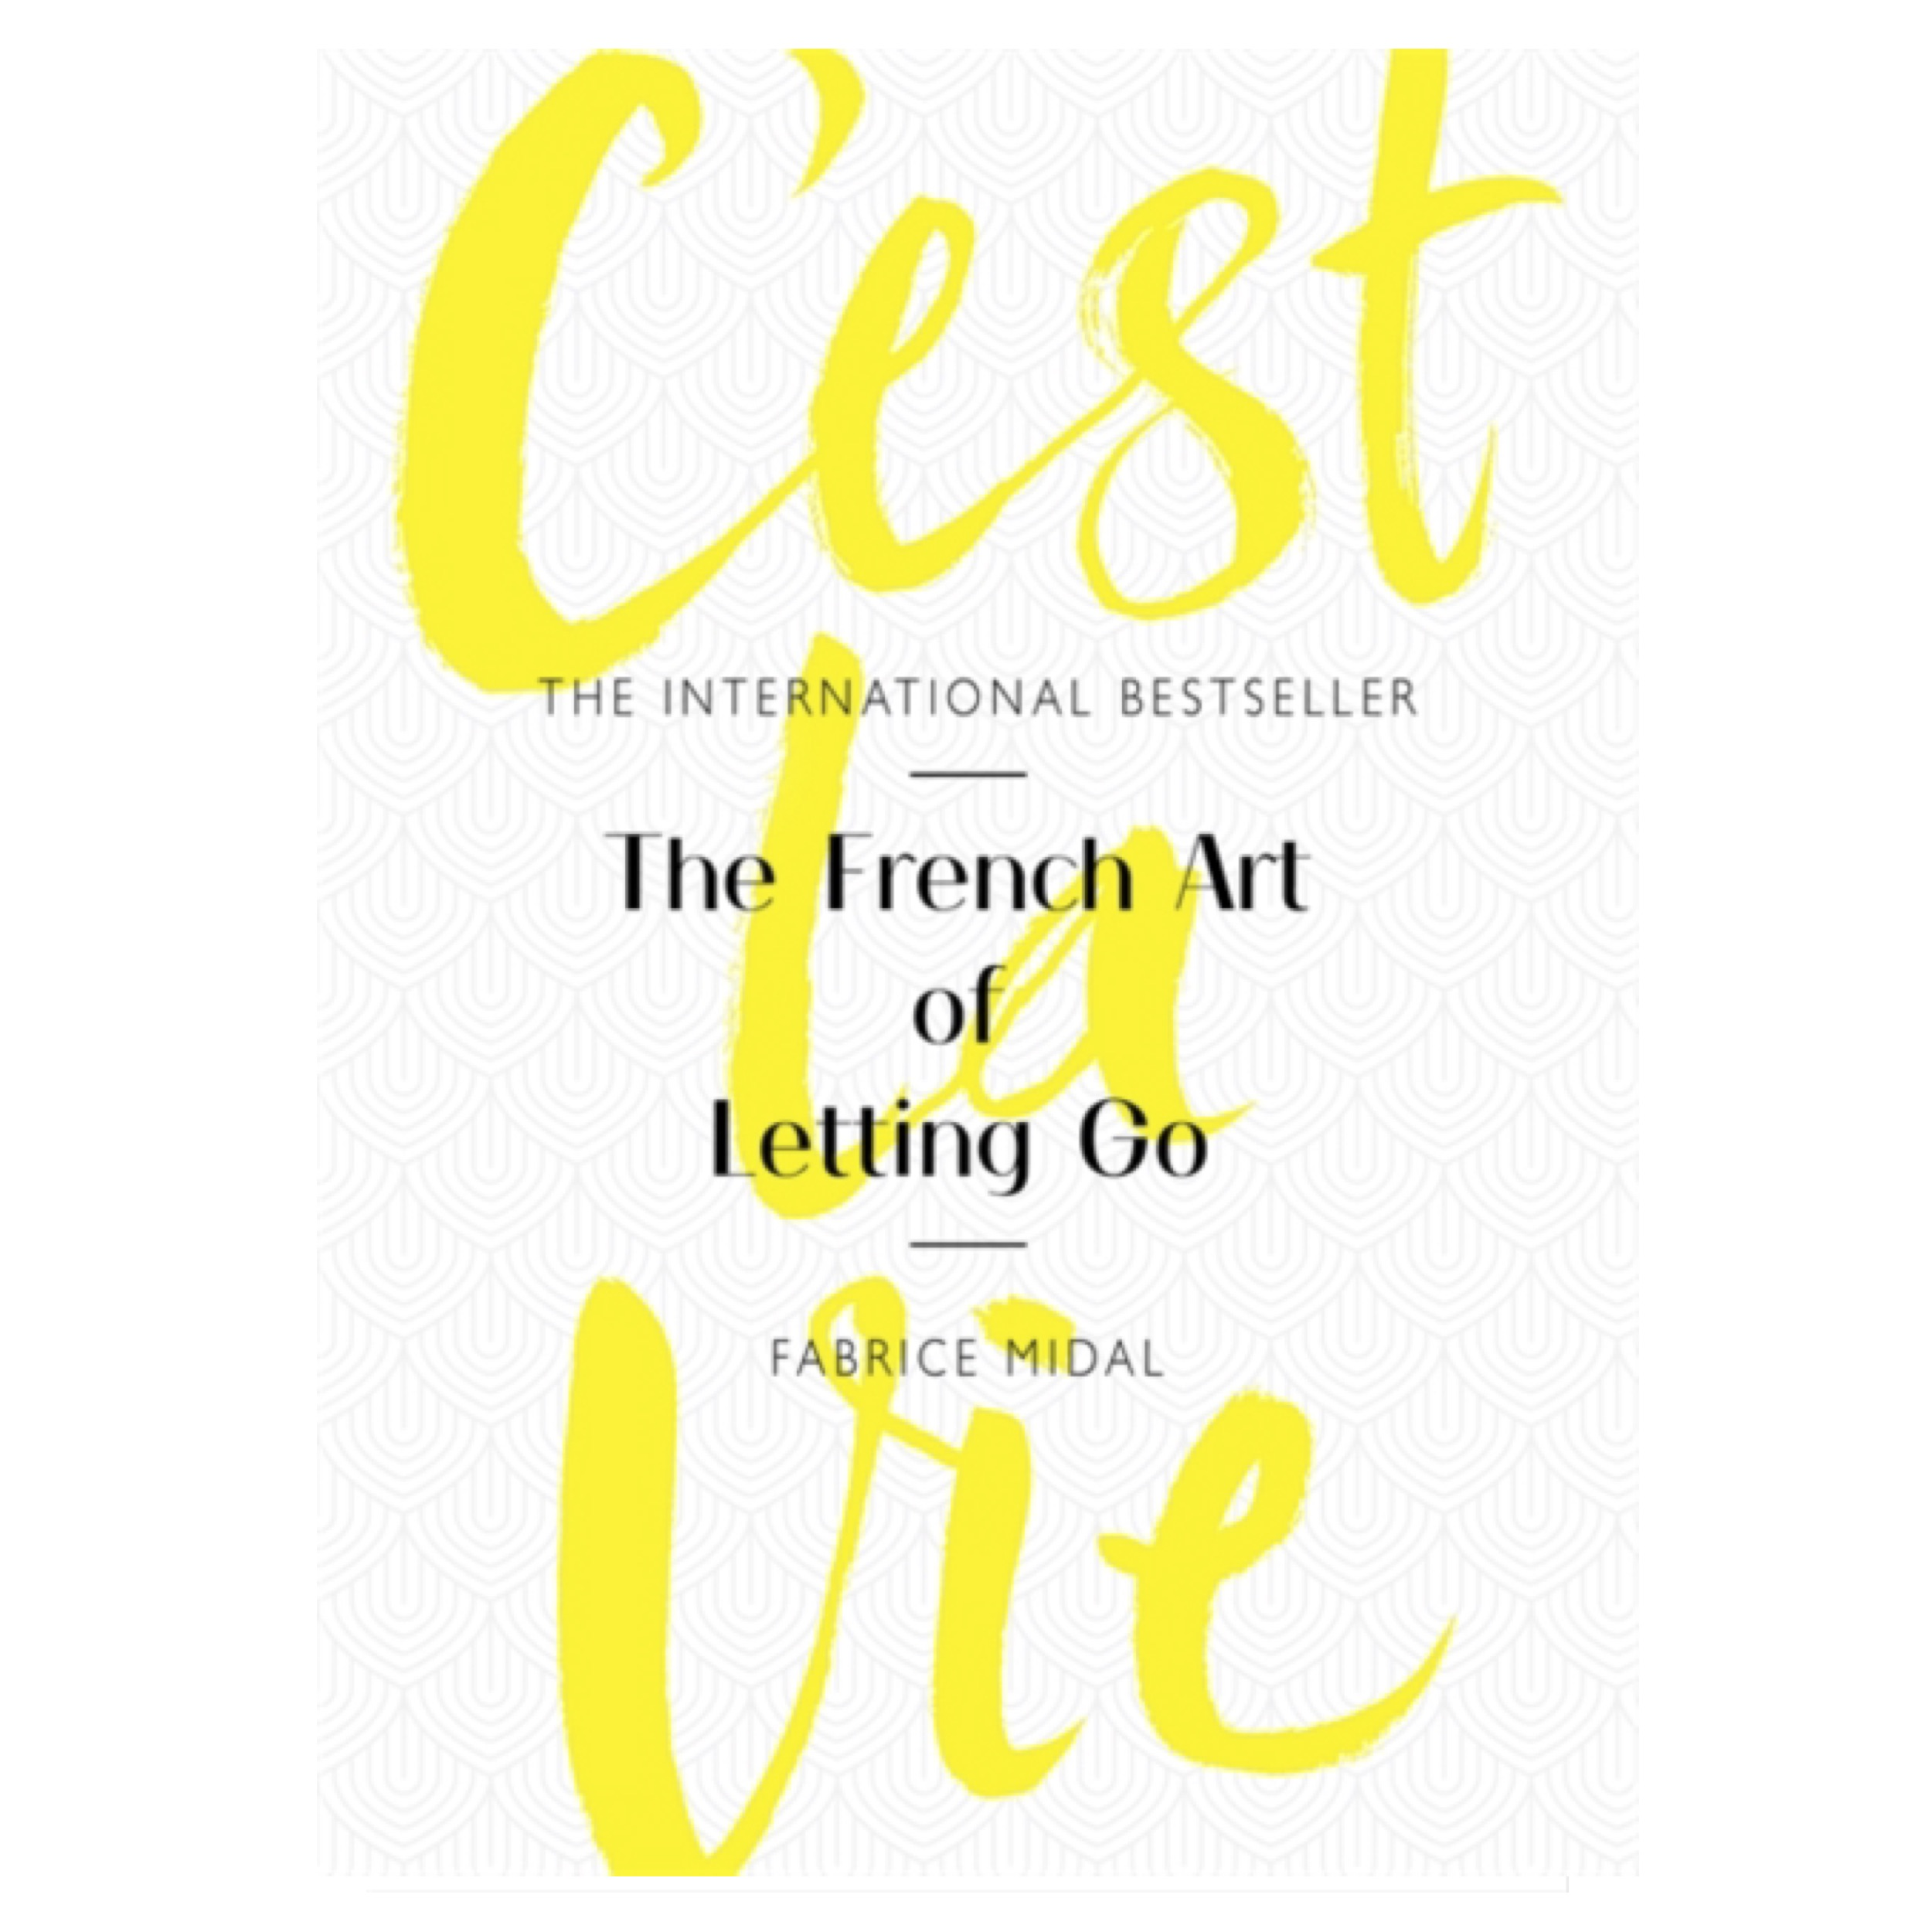 C'est La Vie: The French Art of Letting Go